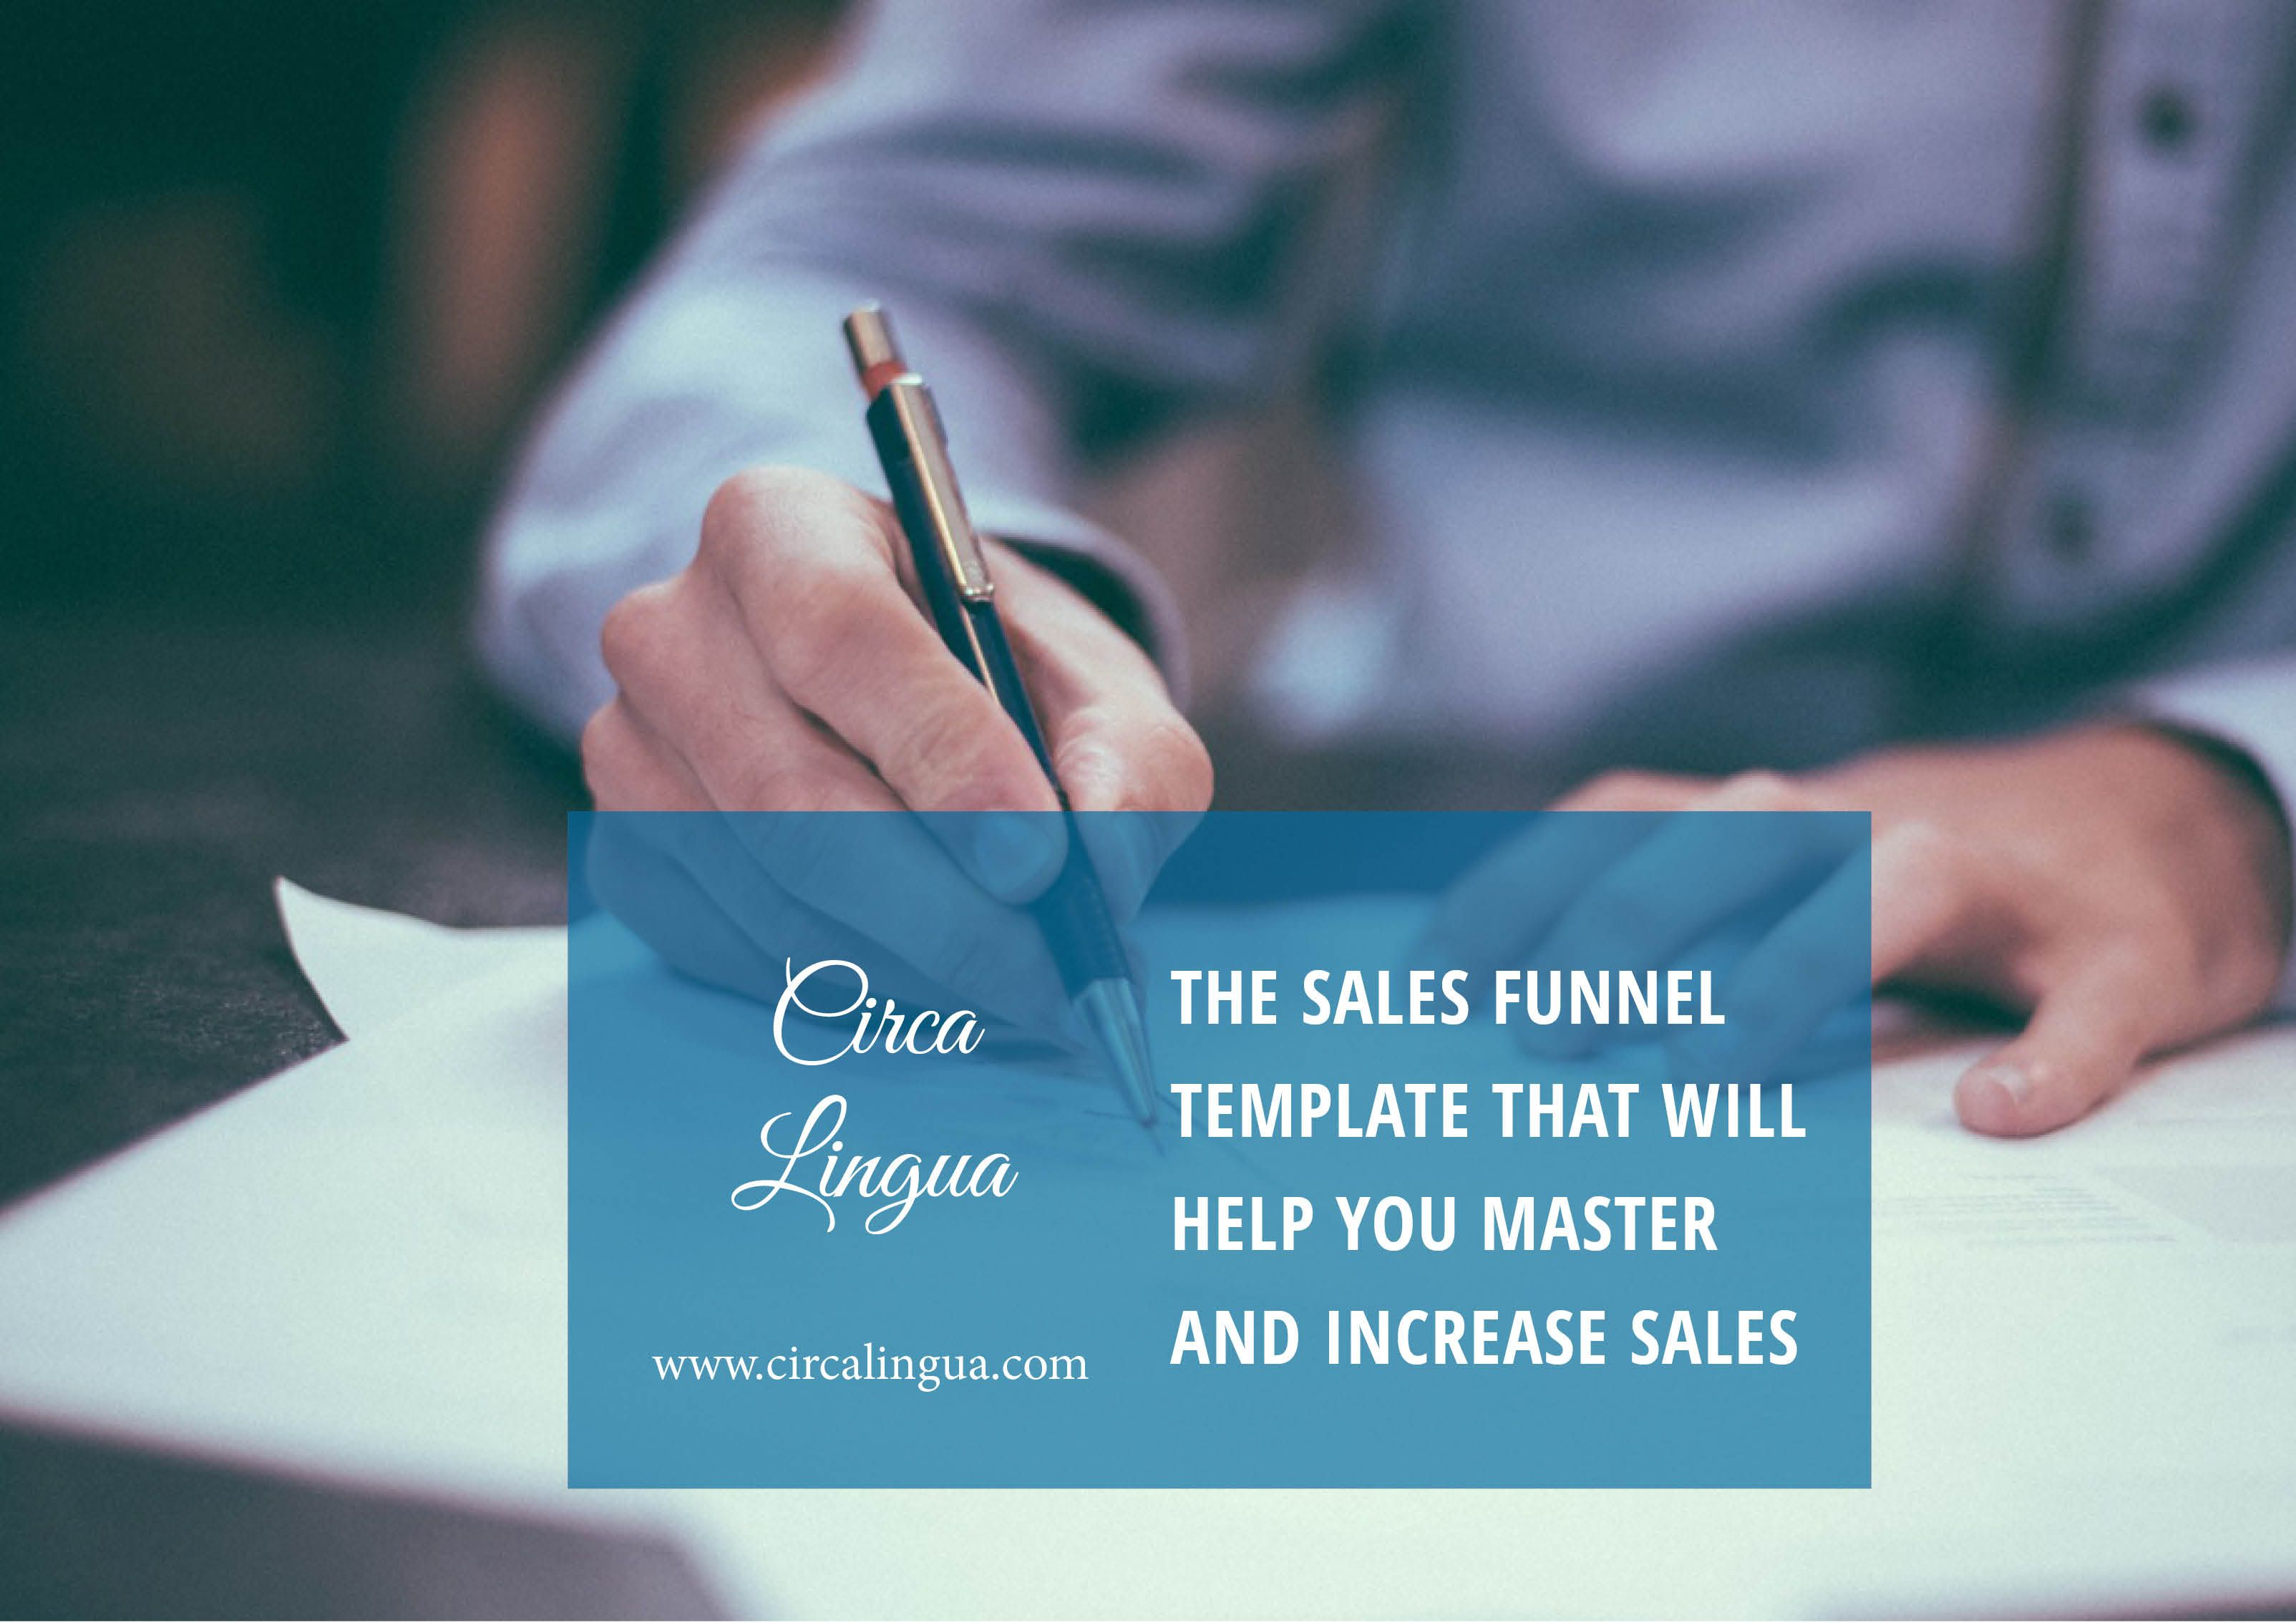 The Sales Funnel Template That Will Help You Master And Increase